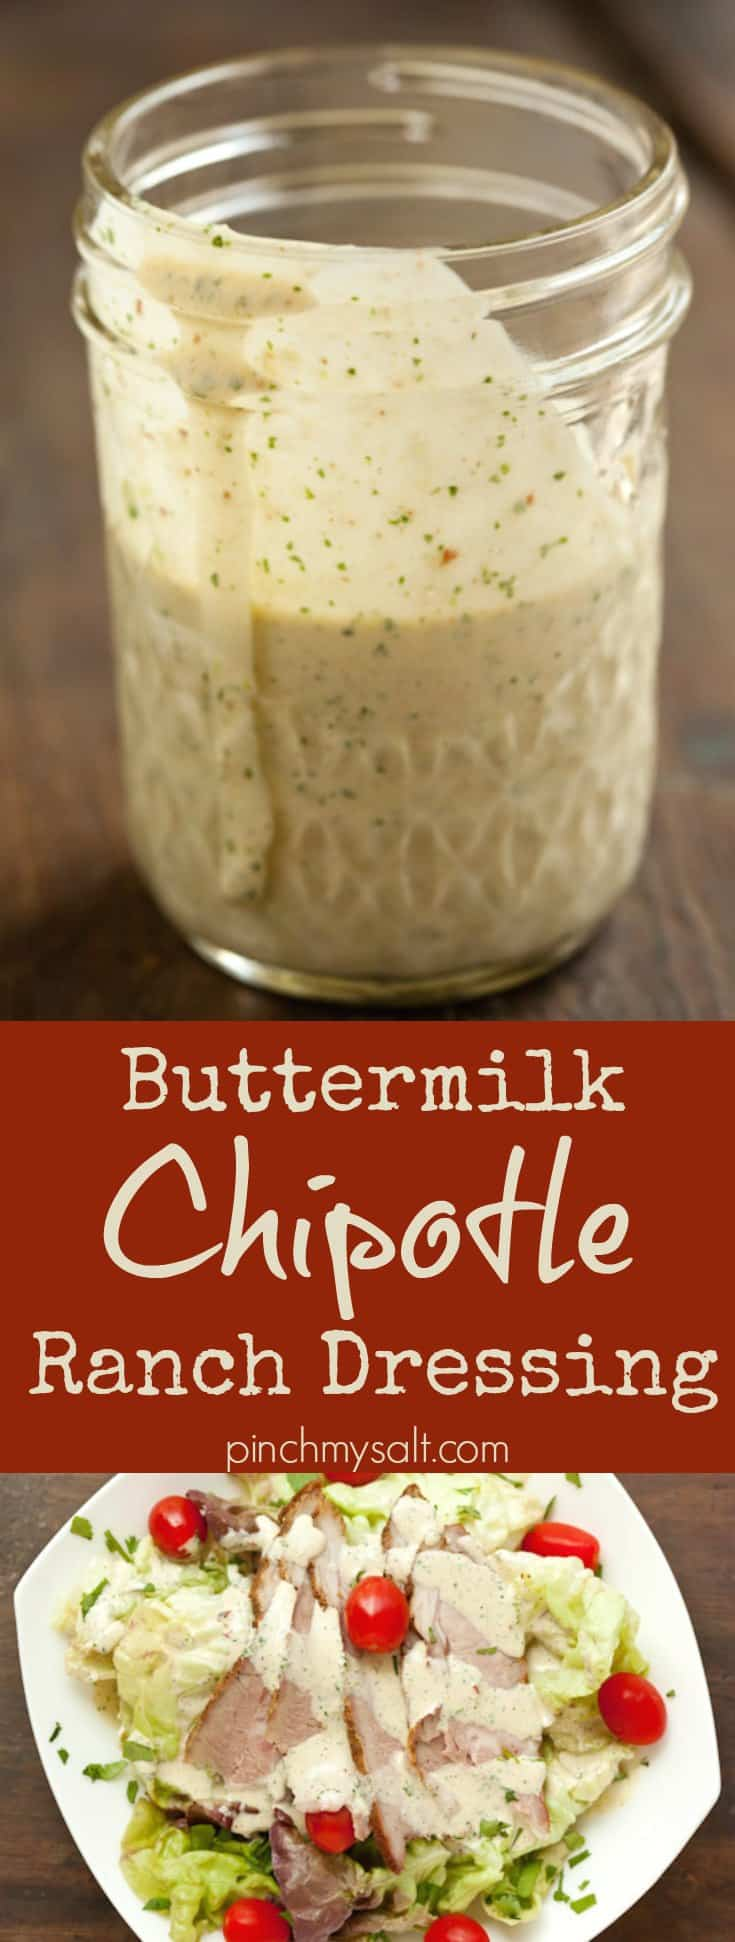 Buttermilk Chipotle Ranch Dressing | pinchmysalt.com